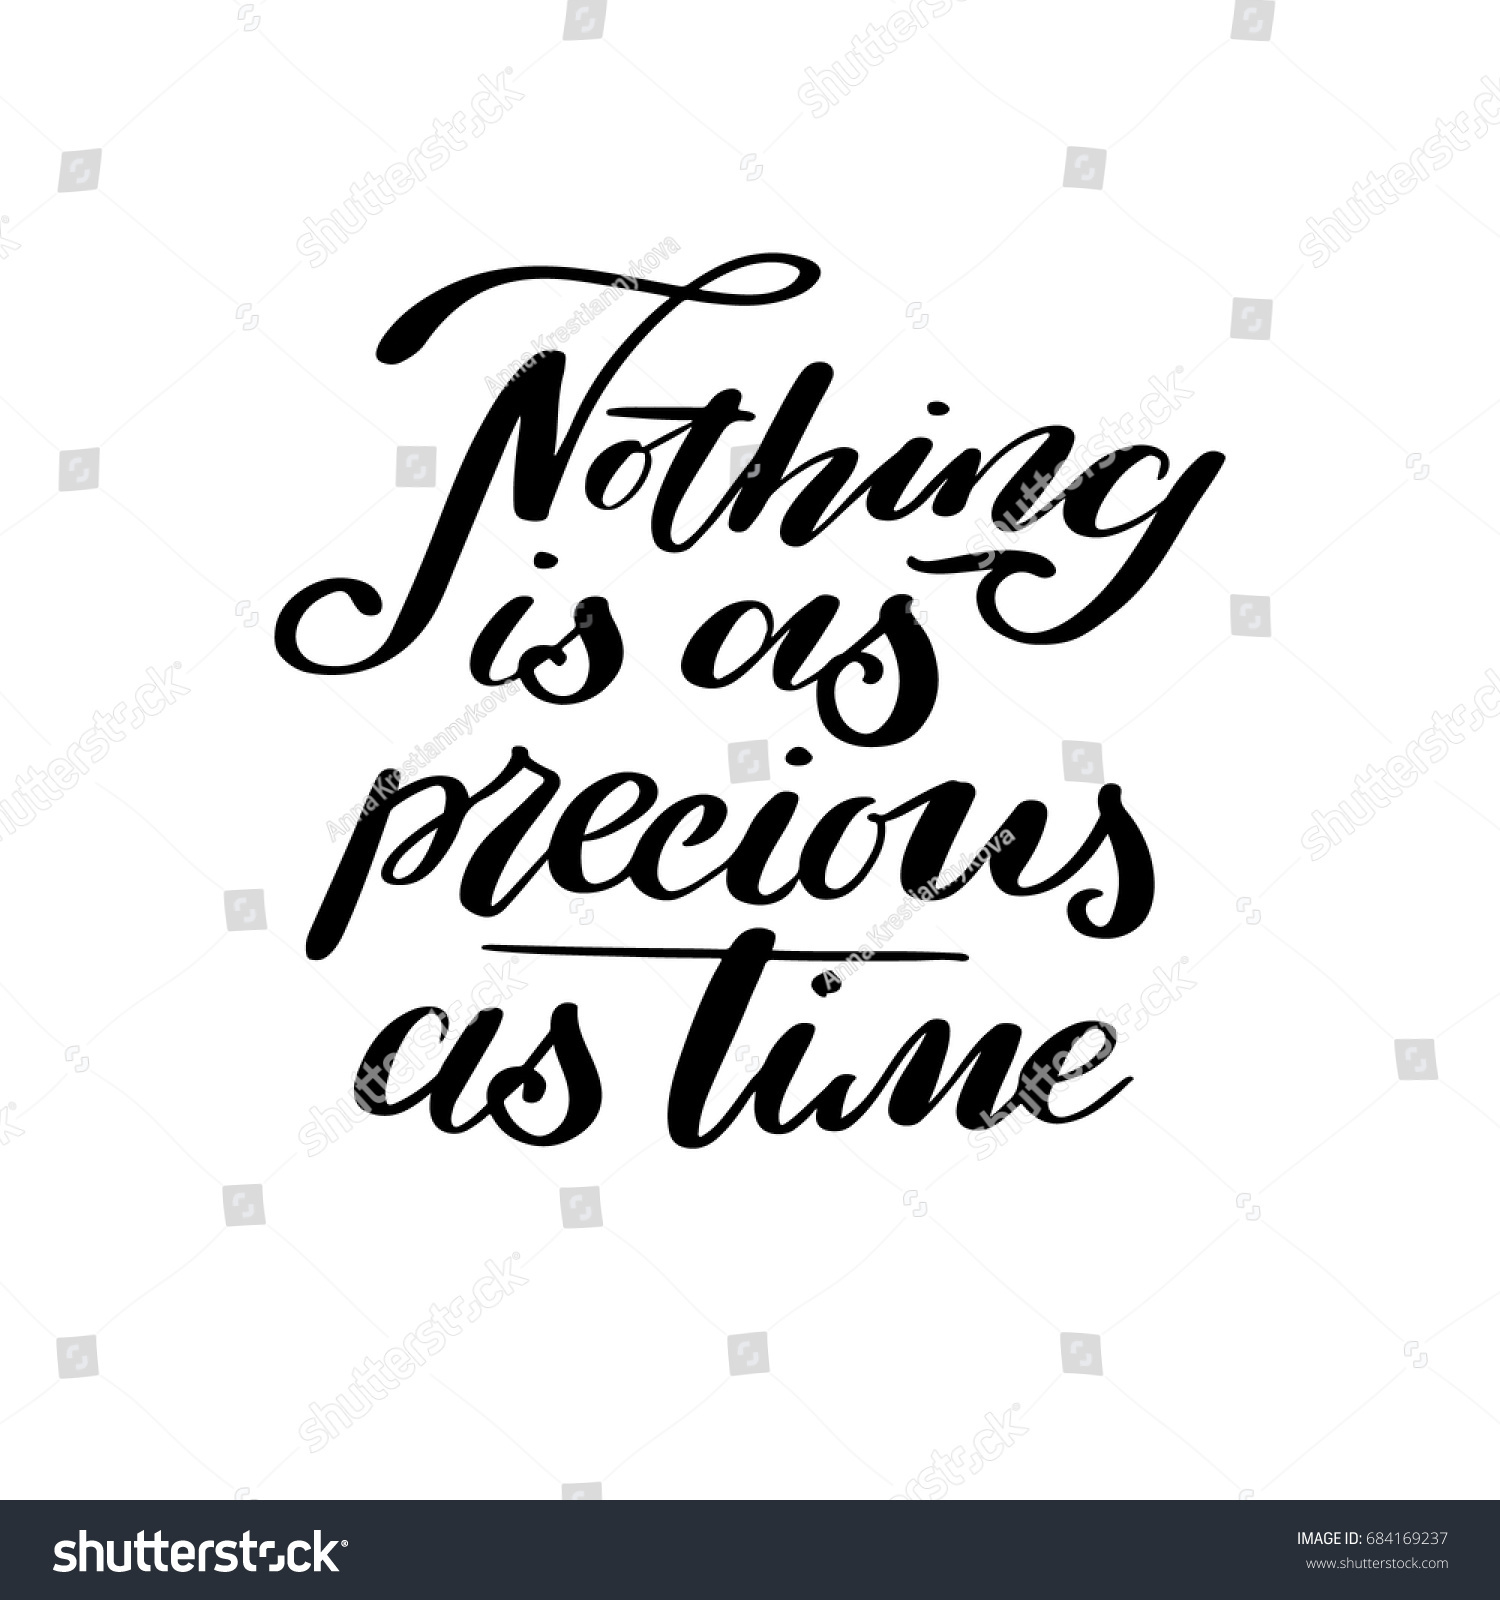 nothing precious time motivational hand lettered stock image